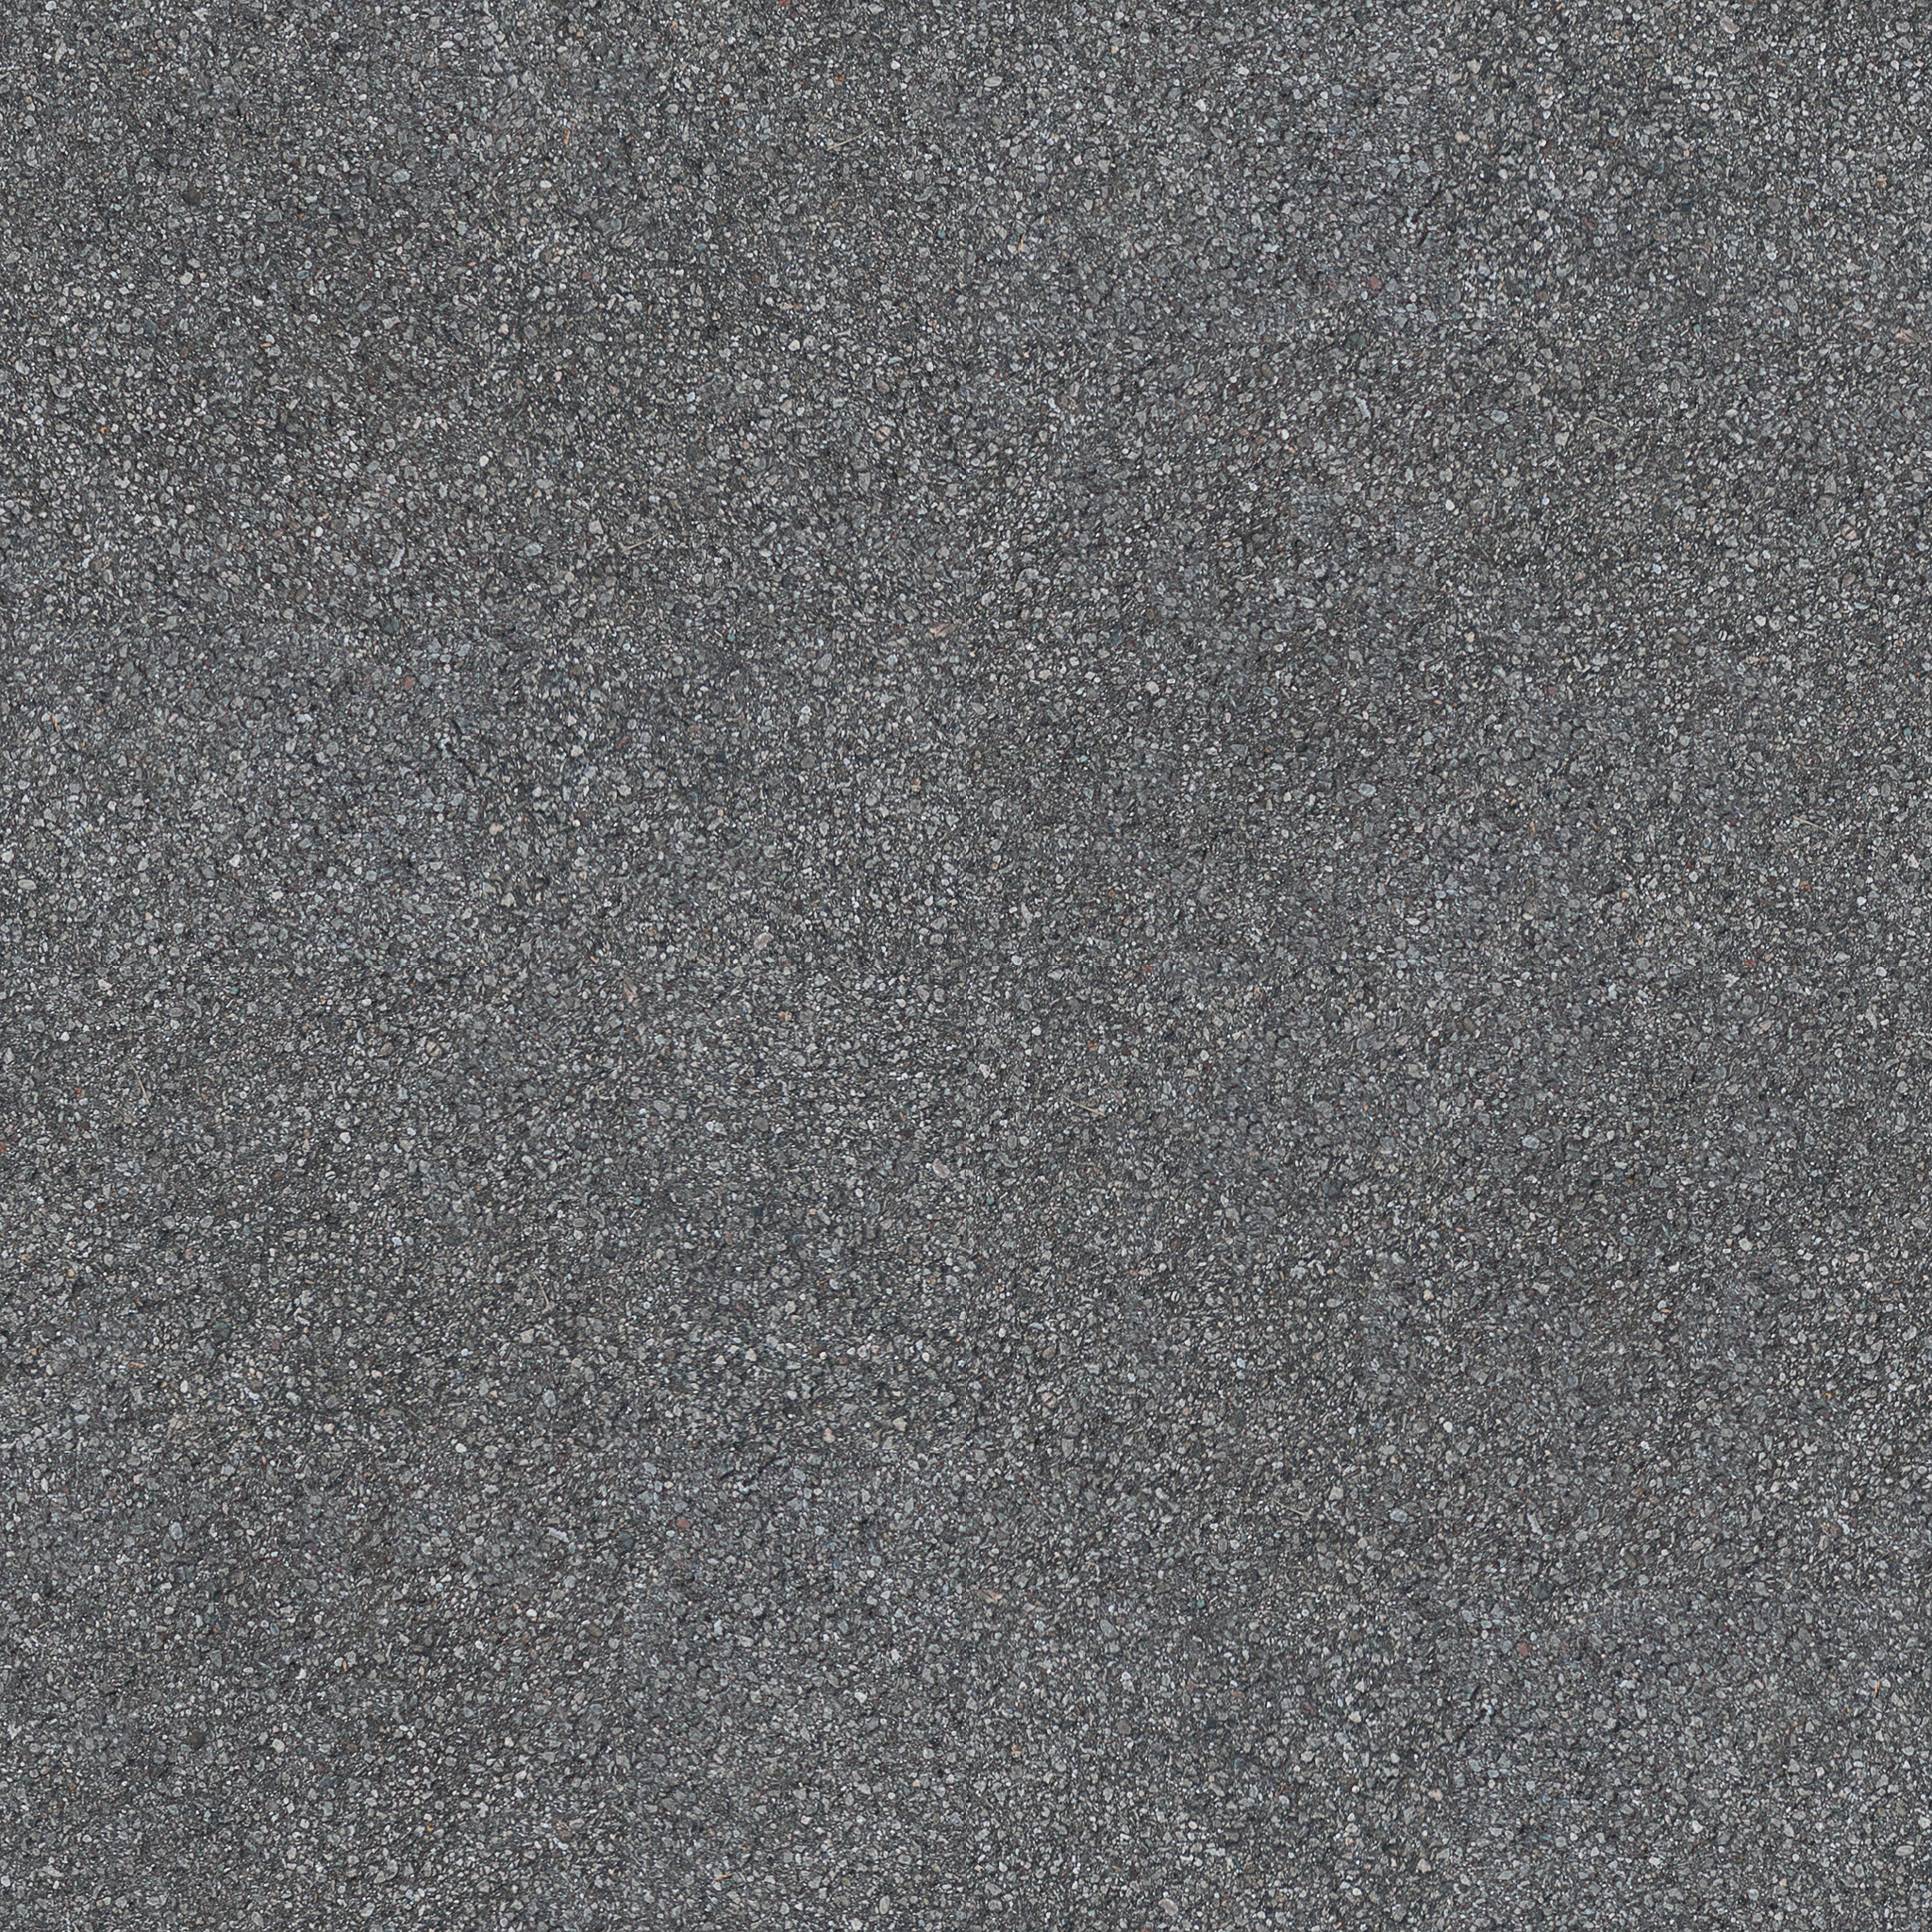 real asphalt texture pack - ground_asphalt_old_07.png | OpenGameArt.org